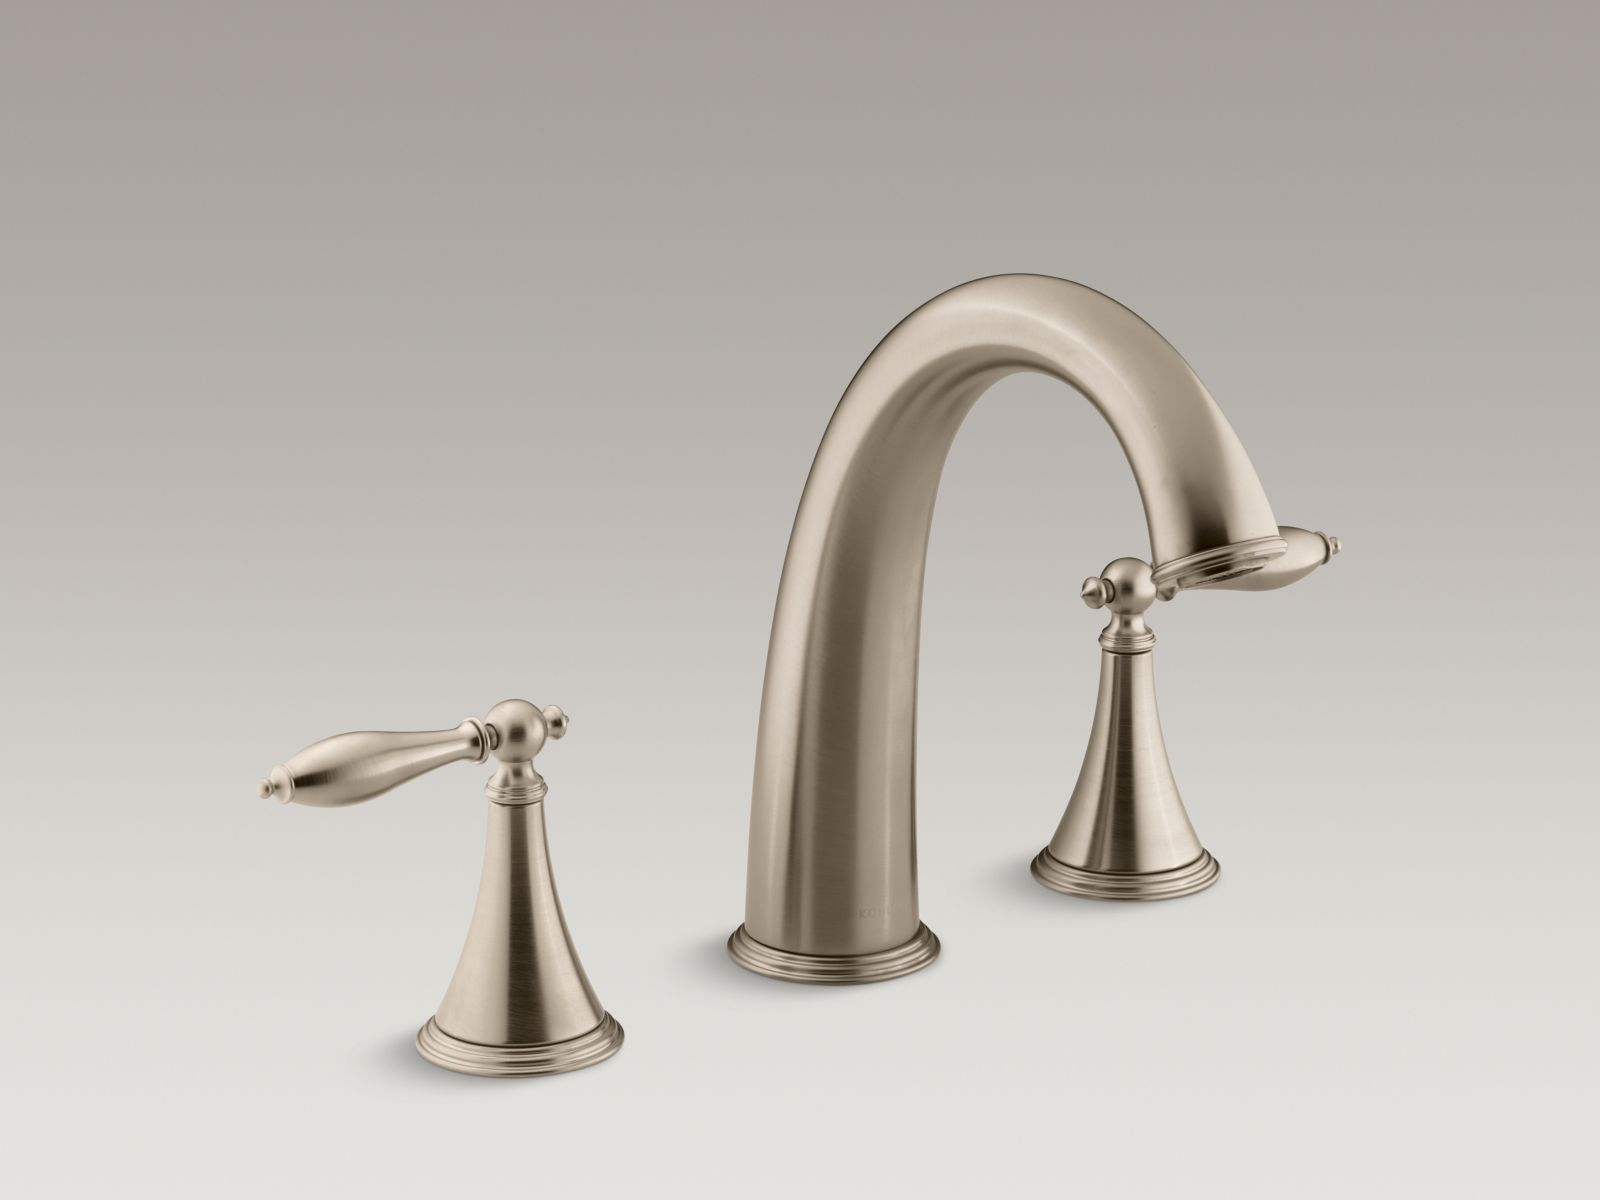 Kohler Finial® Traditional K-T314-4M-BV Deck-mount bath faucet trim for high-flow valve with lever handles, valve not included Vibrant Brushed Bronze